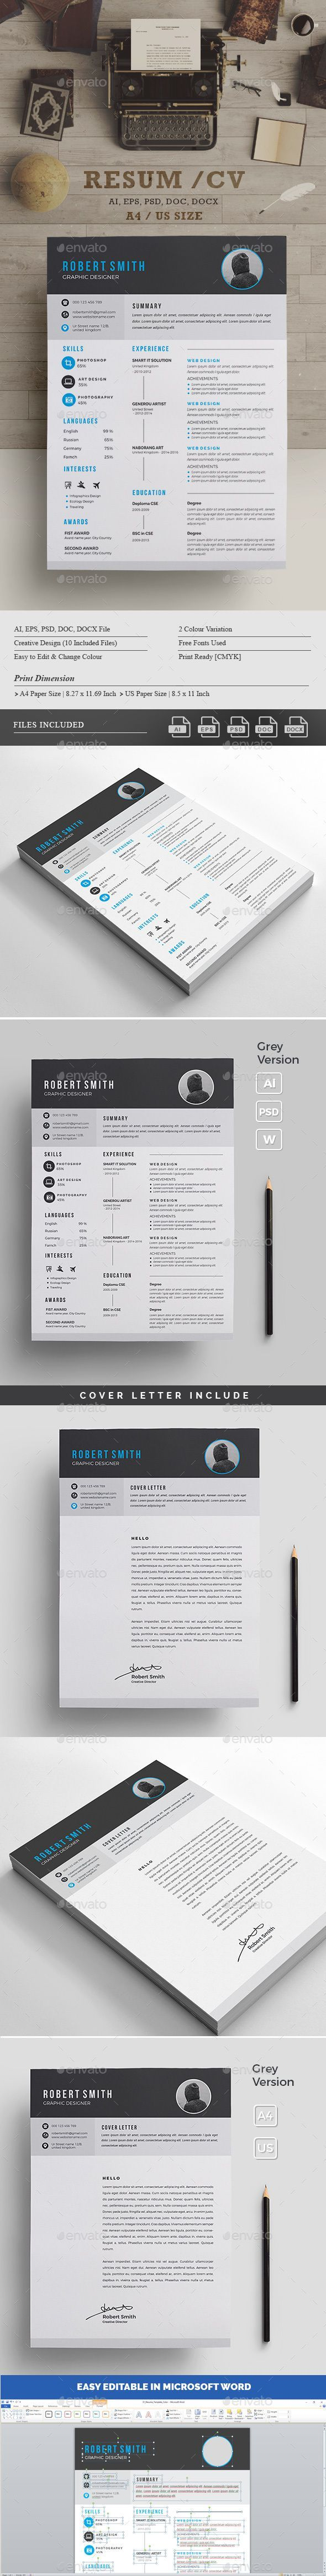 32 best Modern Resume Templates images on Pinterest | Modern resume ...